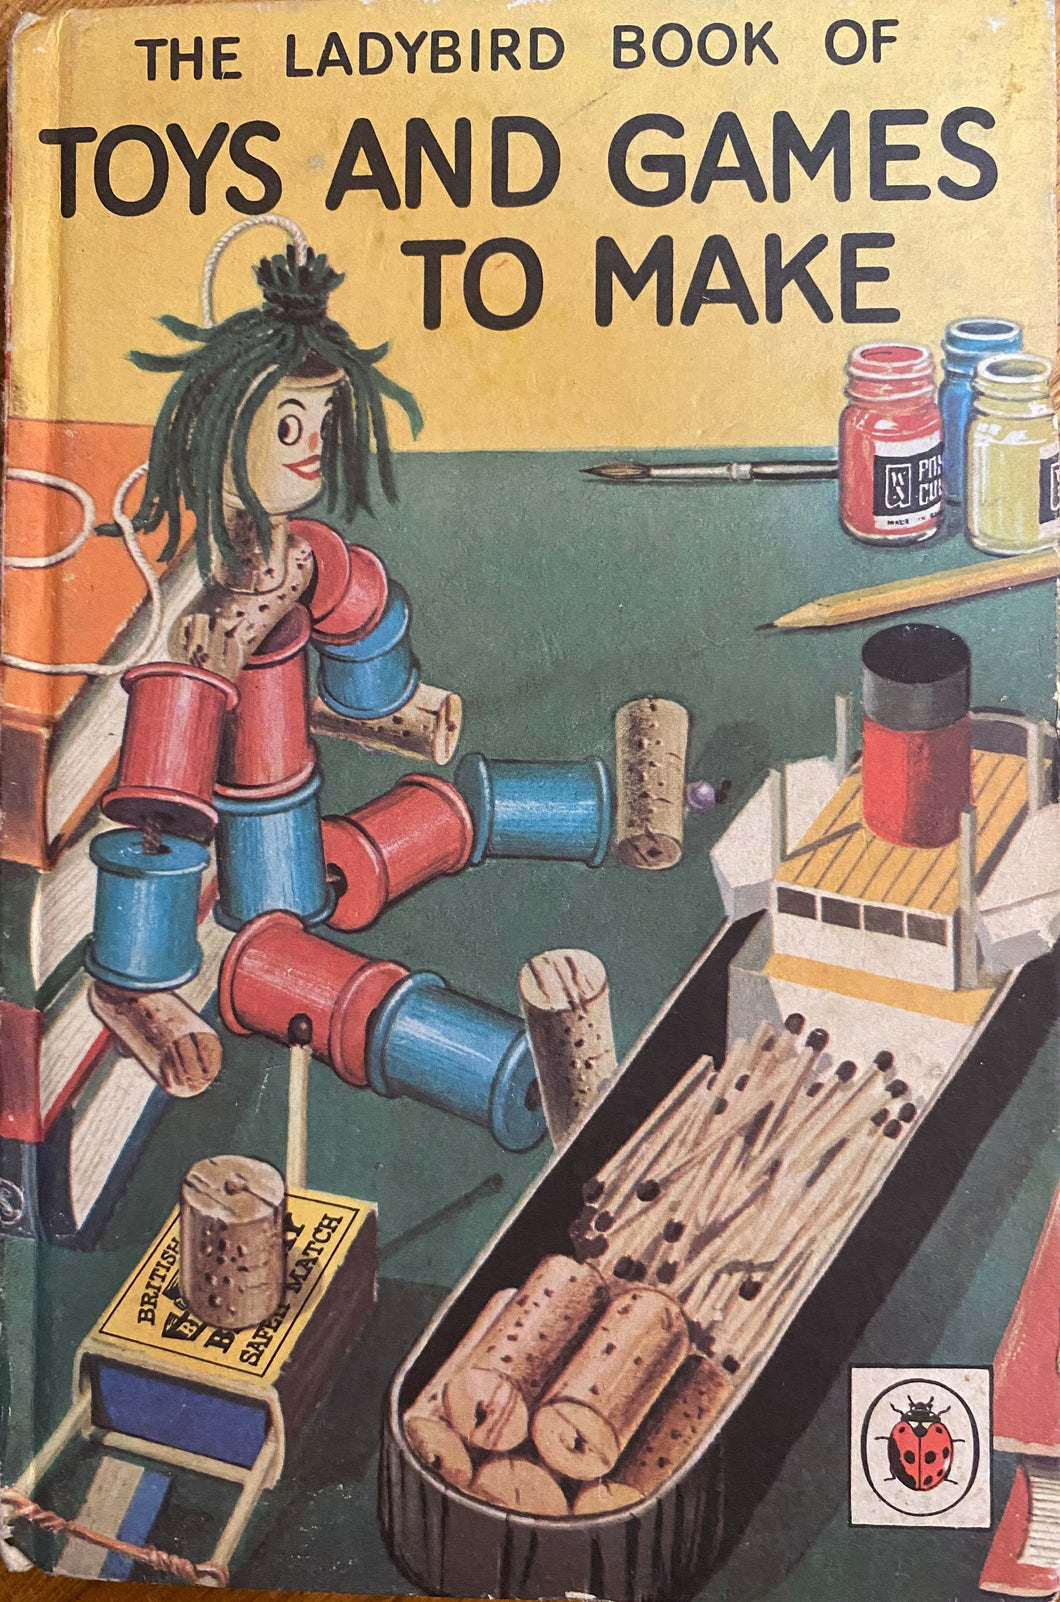 Toys and Games to Make (1 June 1971 - 30 April 1974)